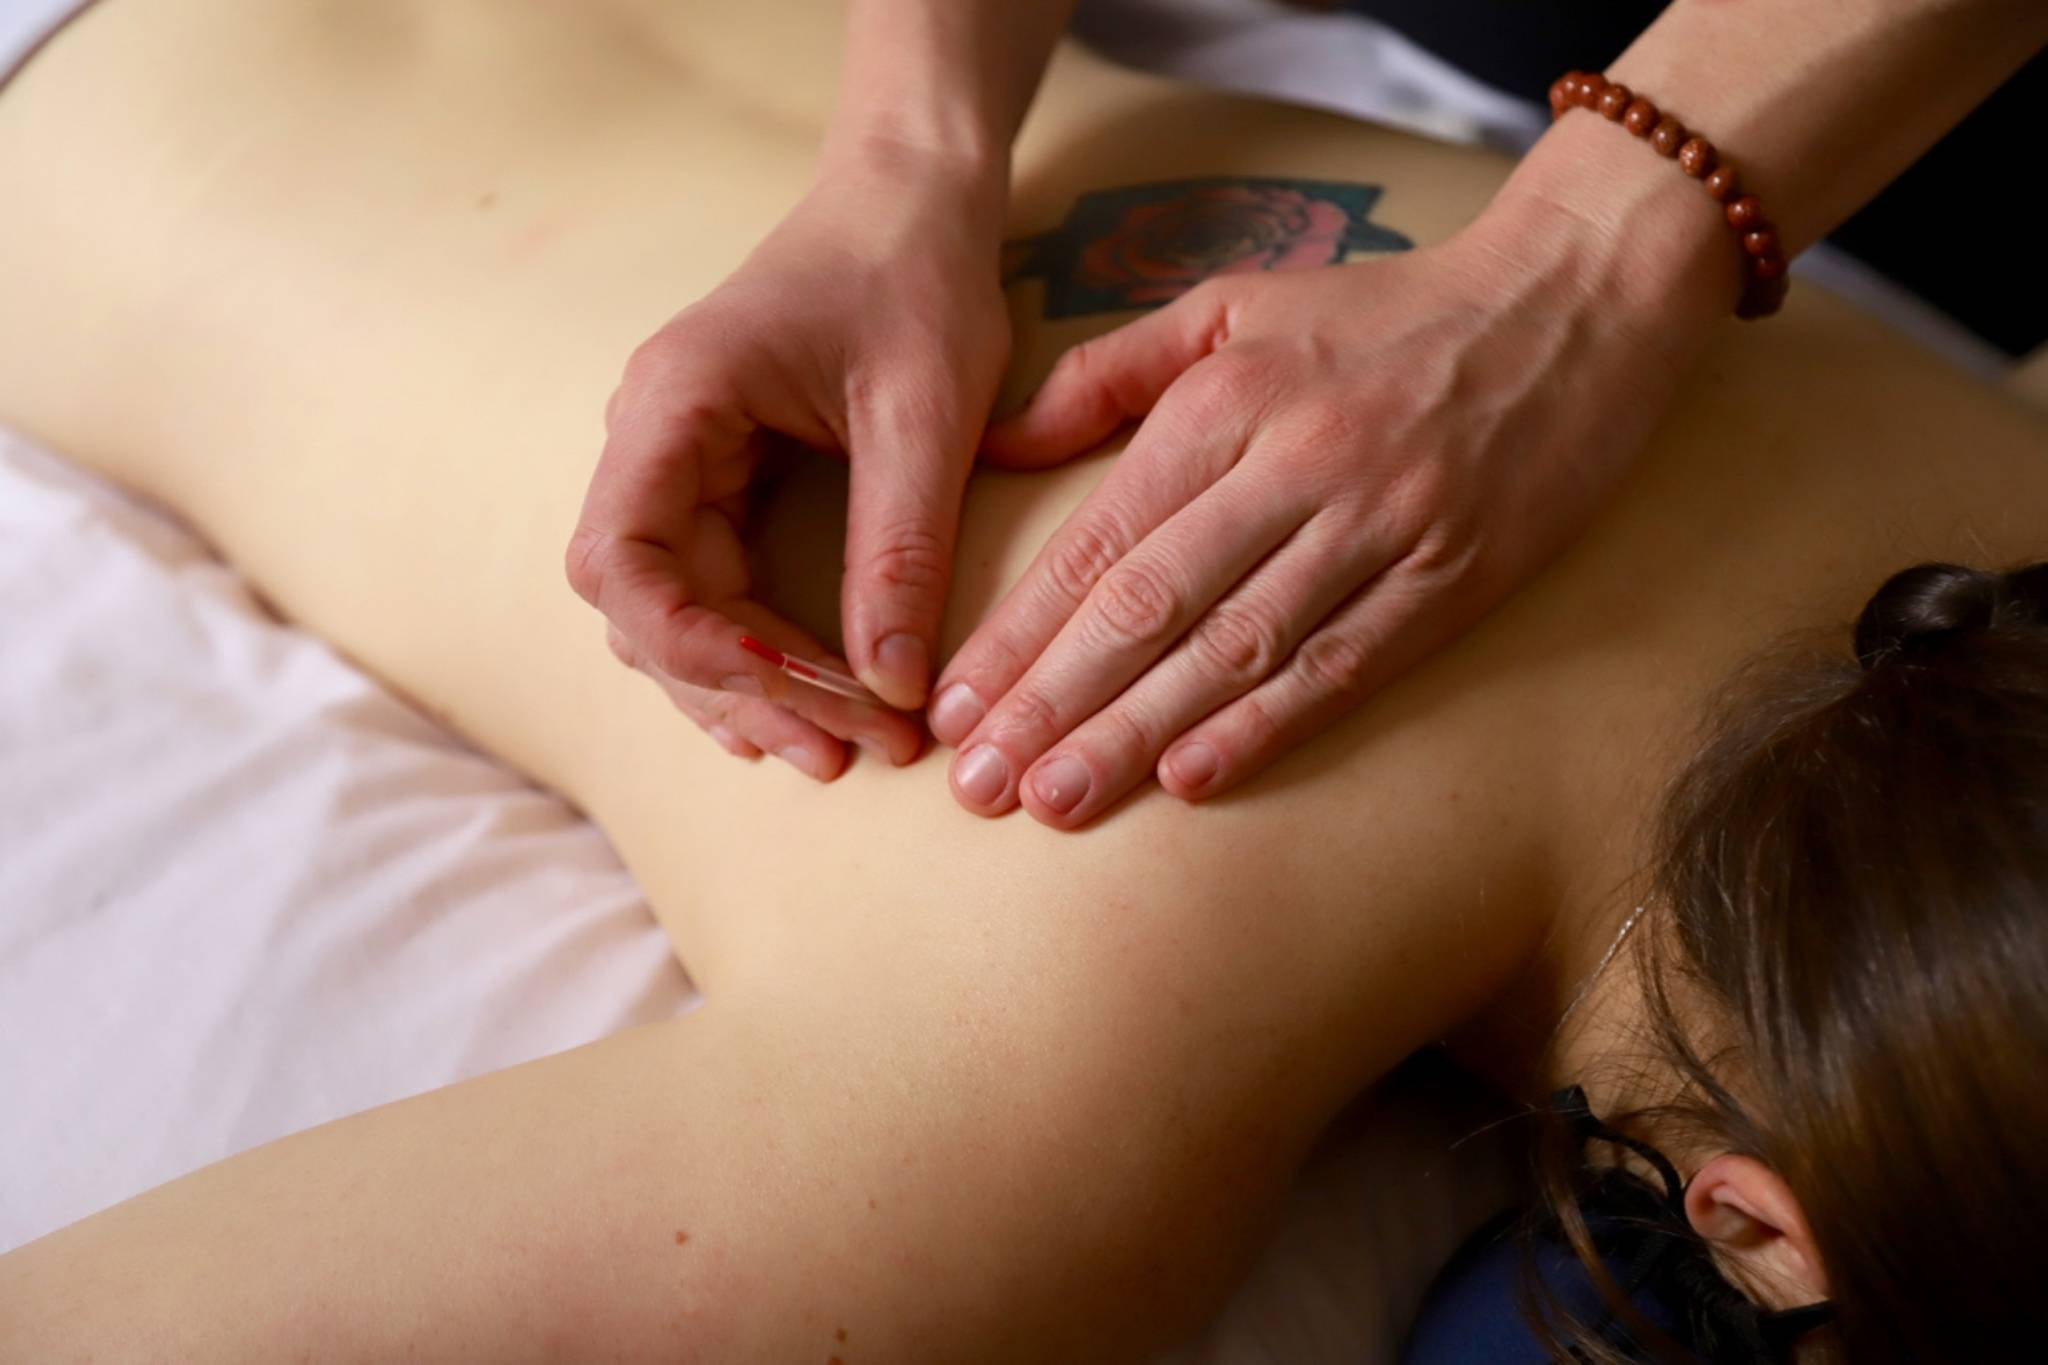 girl getting acupuncture in back